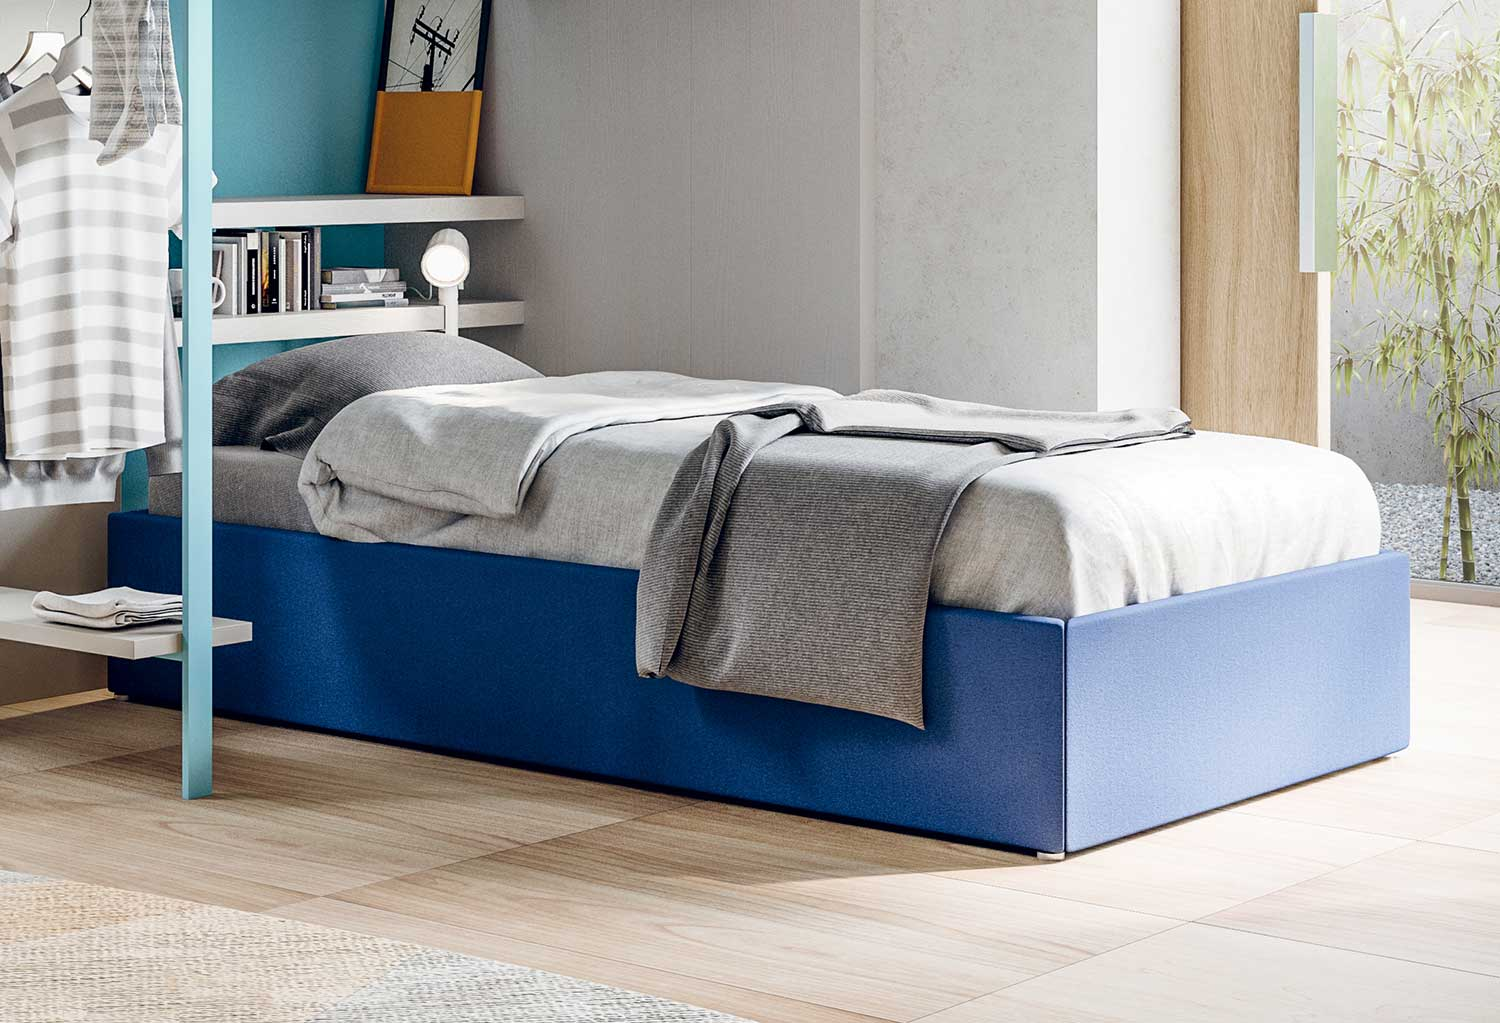 Letto sommier contenitore singolo smart clever it - Letto singolo contenitore ...